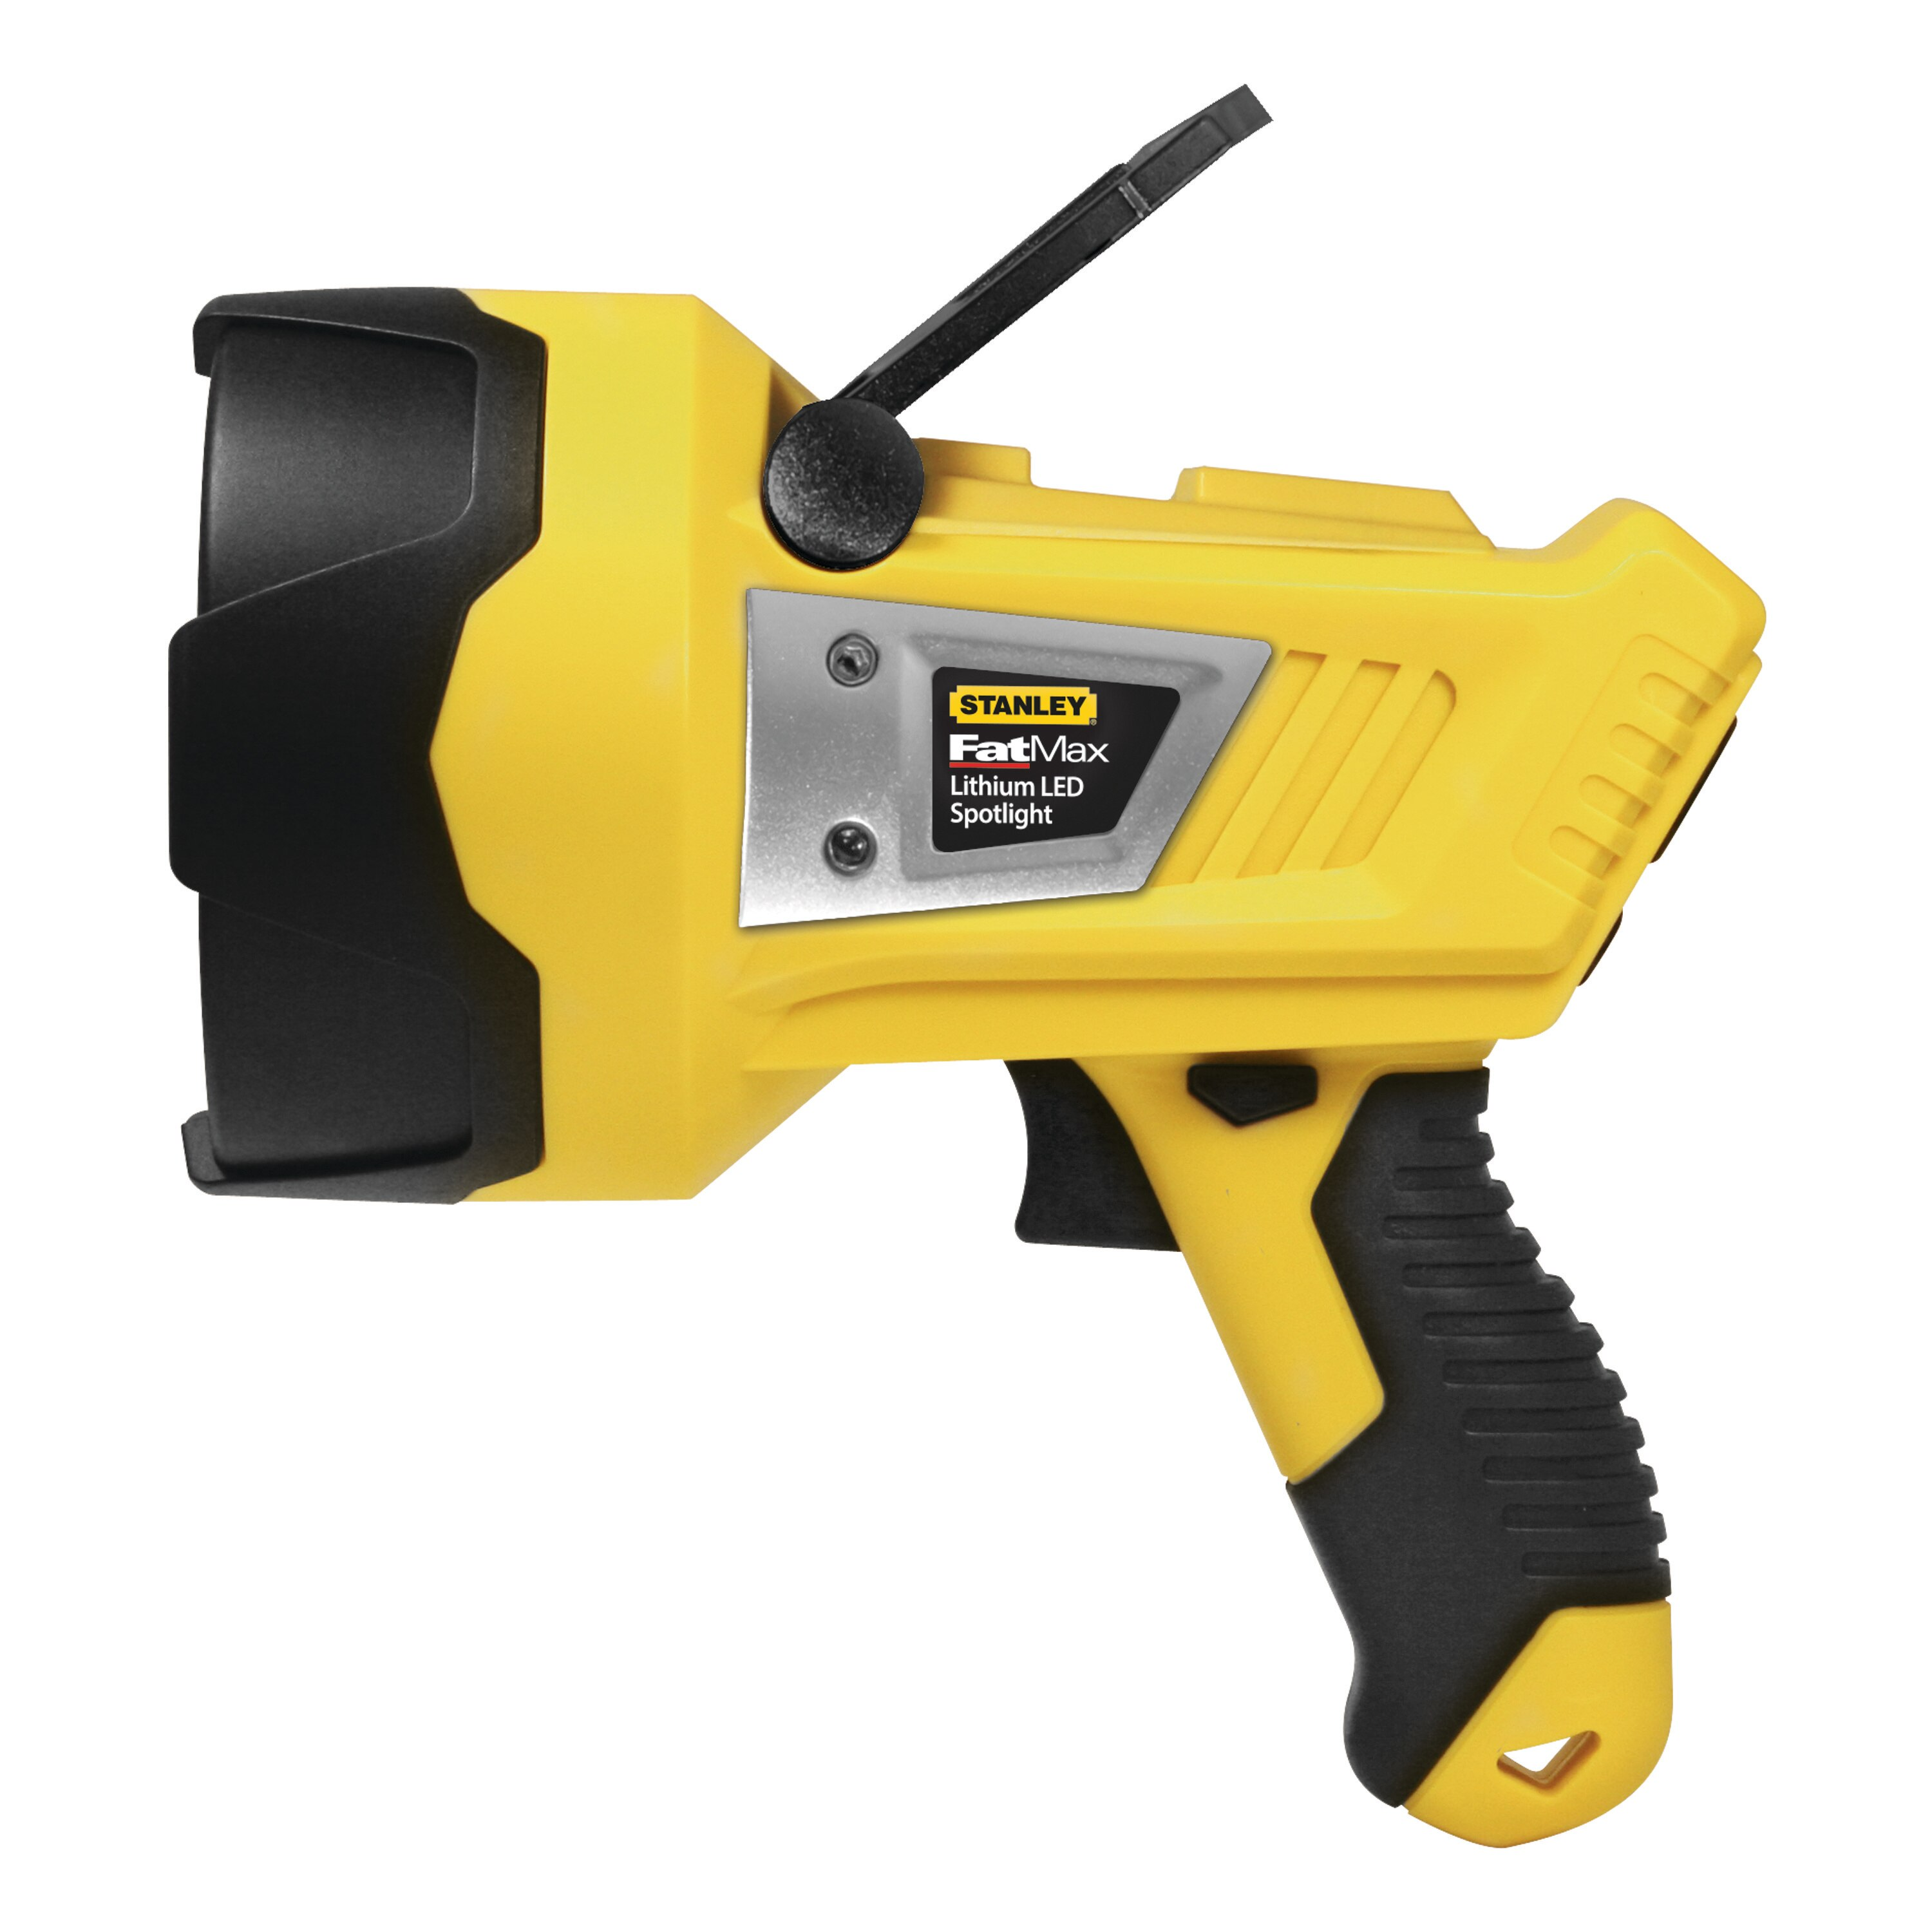 Stanley Tools - LED Lithium Ion Rechargeable Spotlight - LIONLEDS